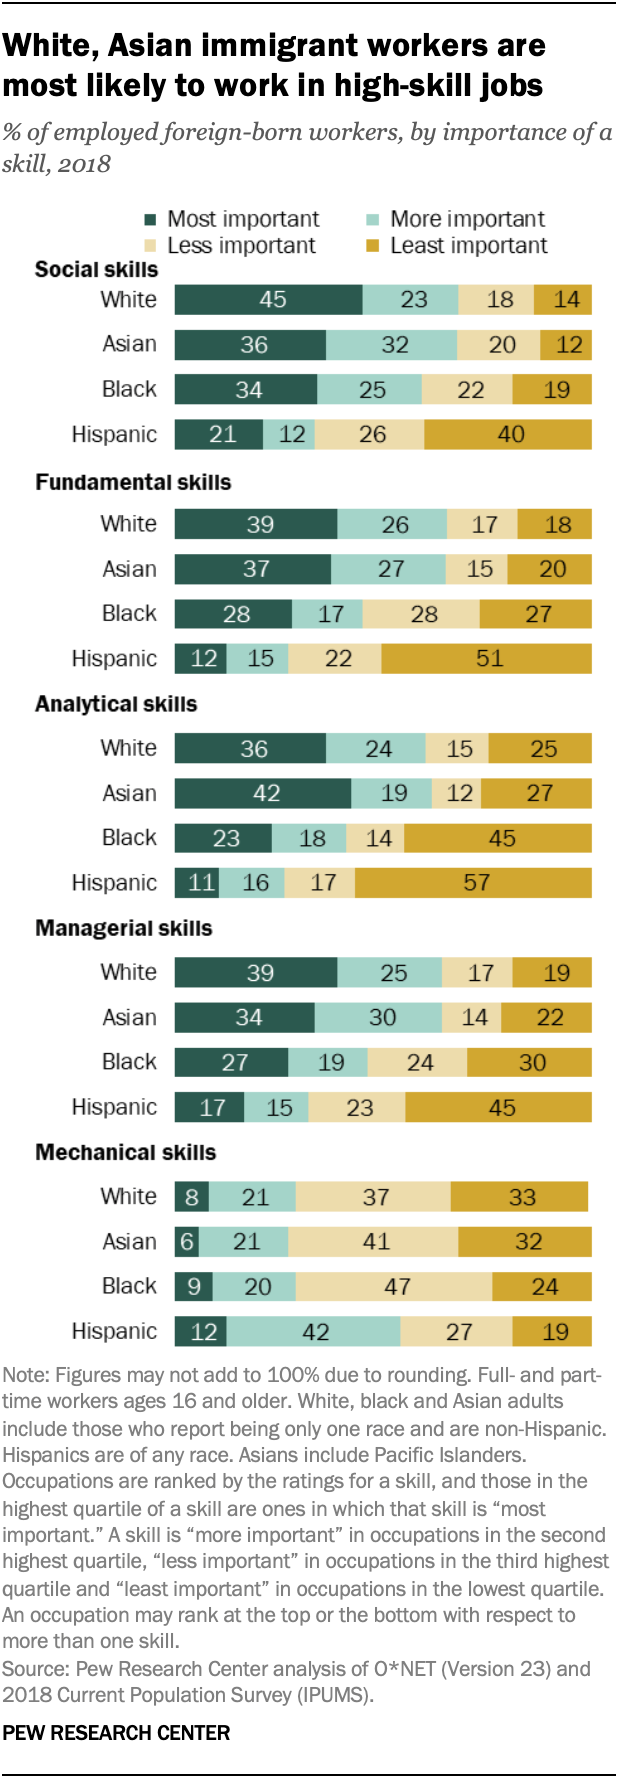 White, Asian immigrant workers are most likely to work in high-skill jobs